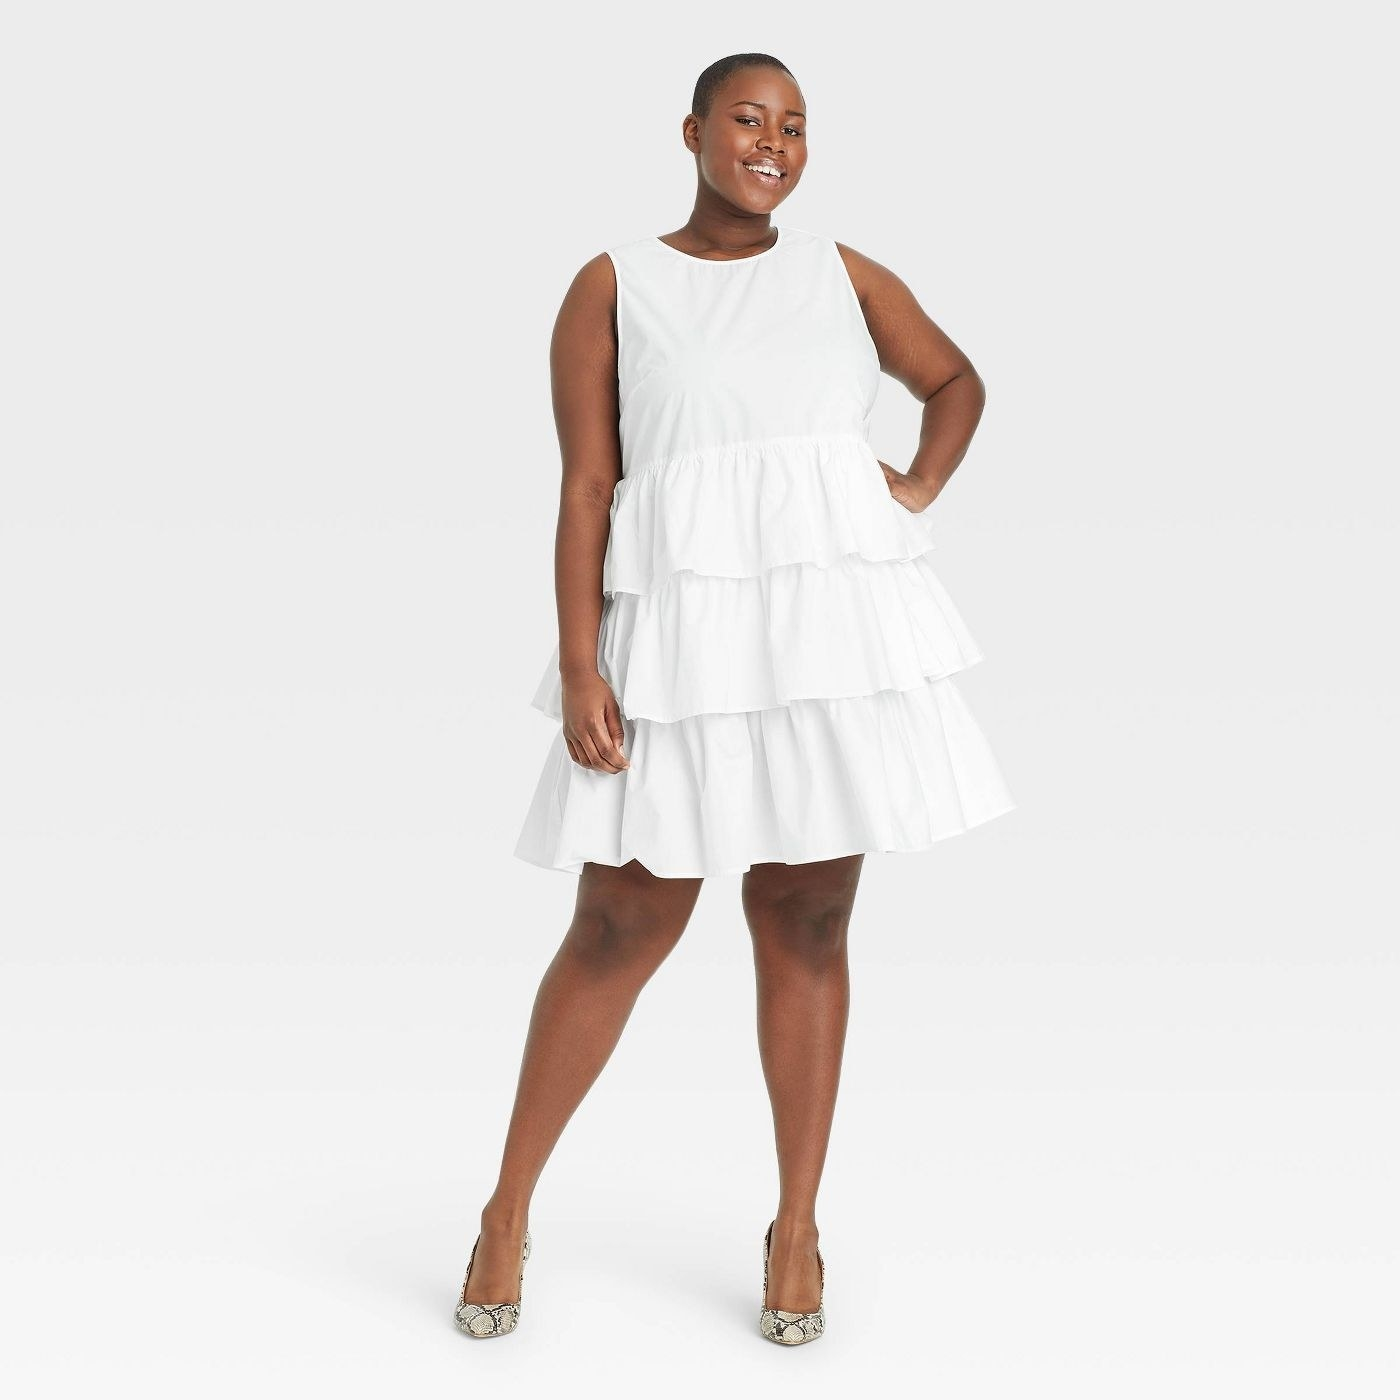 Model wearing white dress ruffle layers, stops above the knee